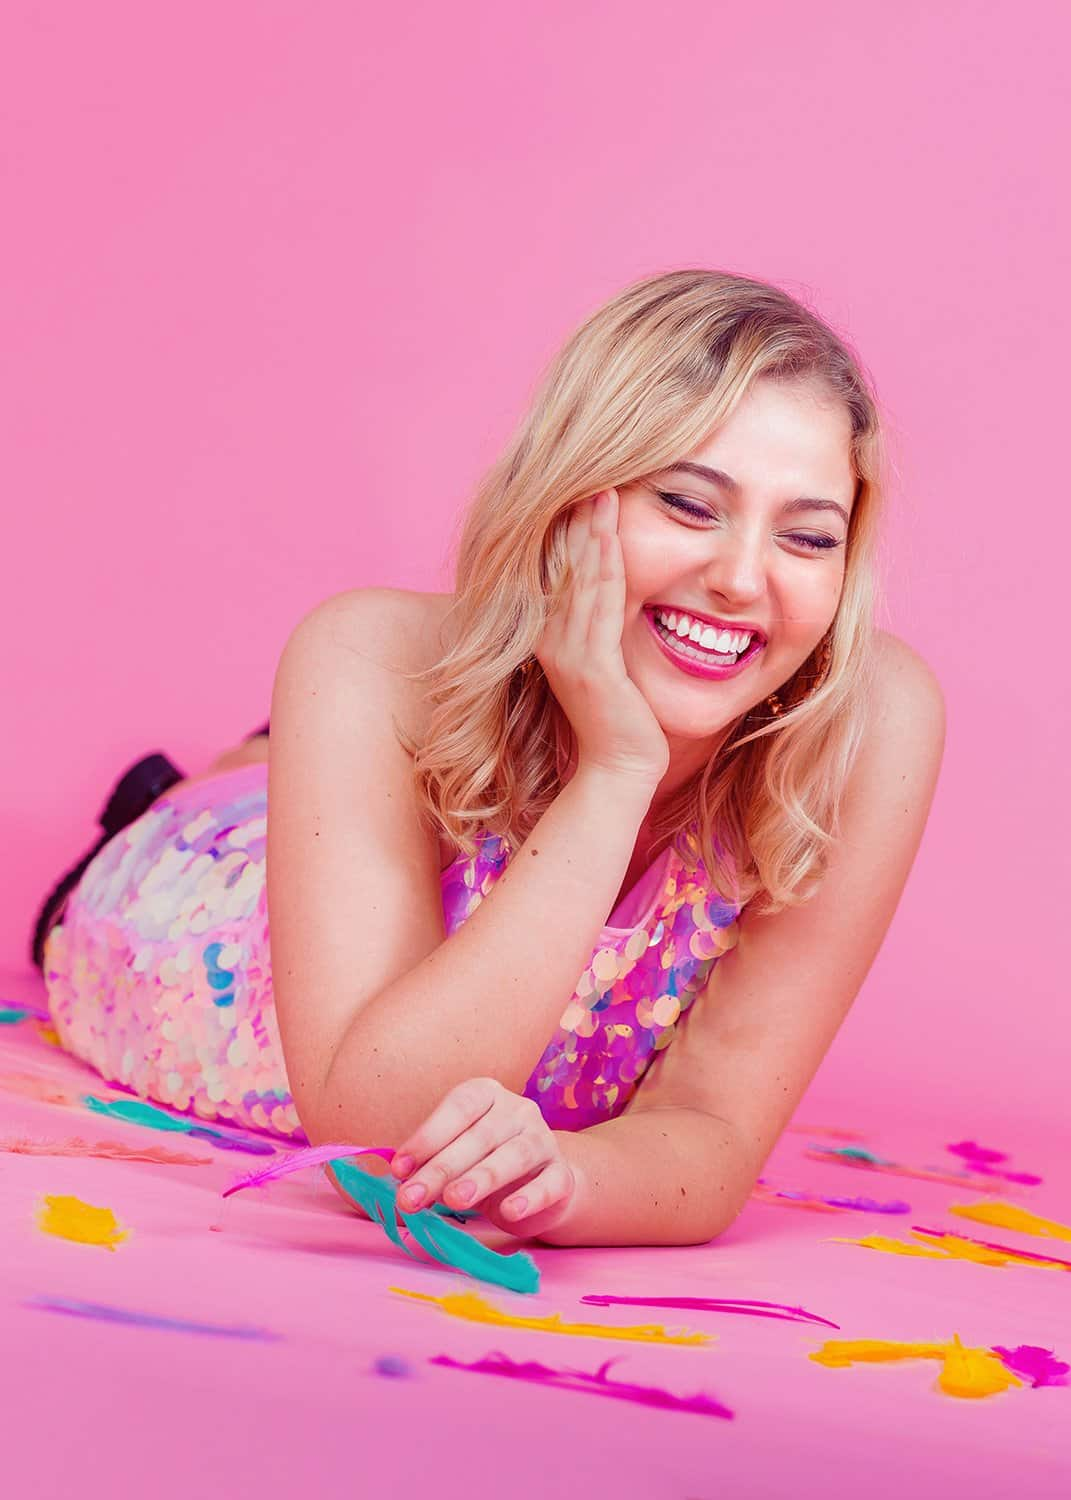 girl laughing on pink backdrop with colorful feathers